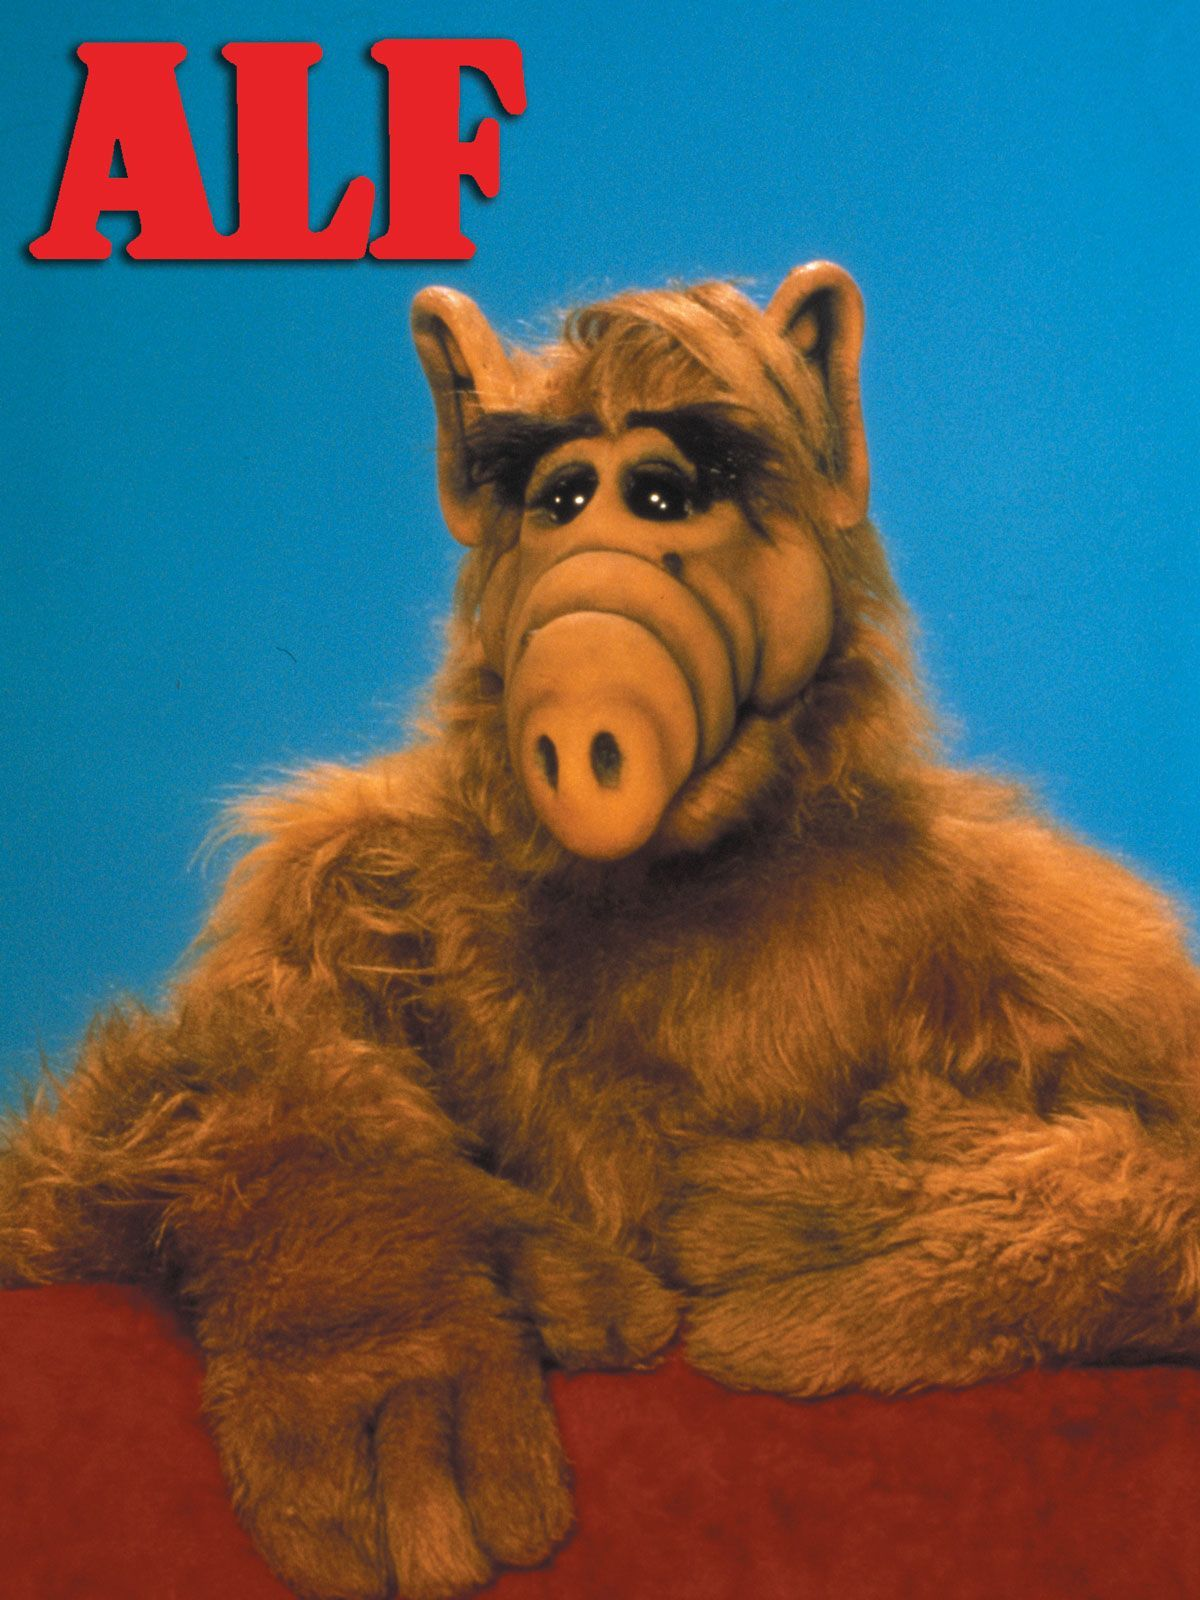 Alf Images Alf Character Live Action Hd Wallpaper And Background